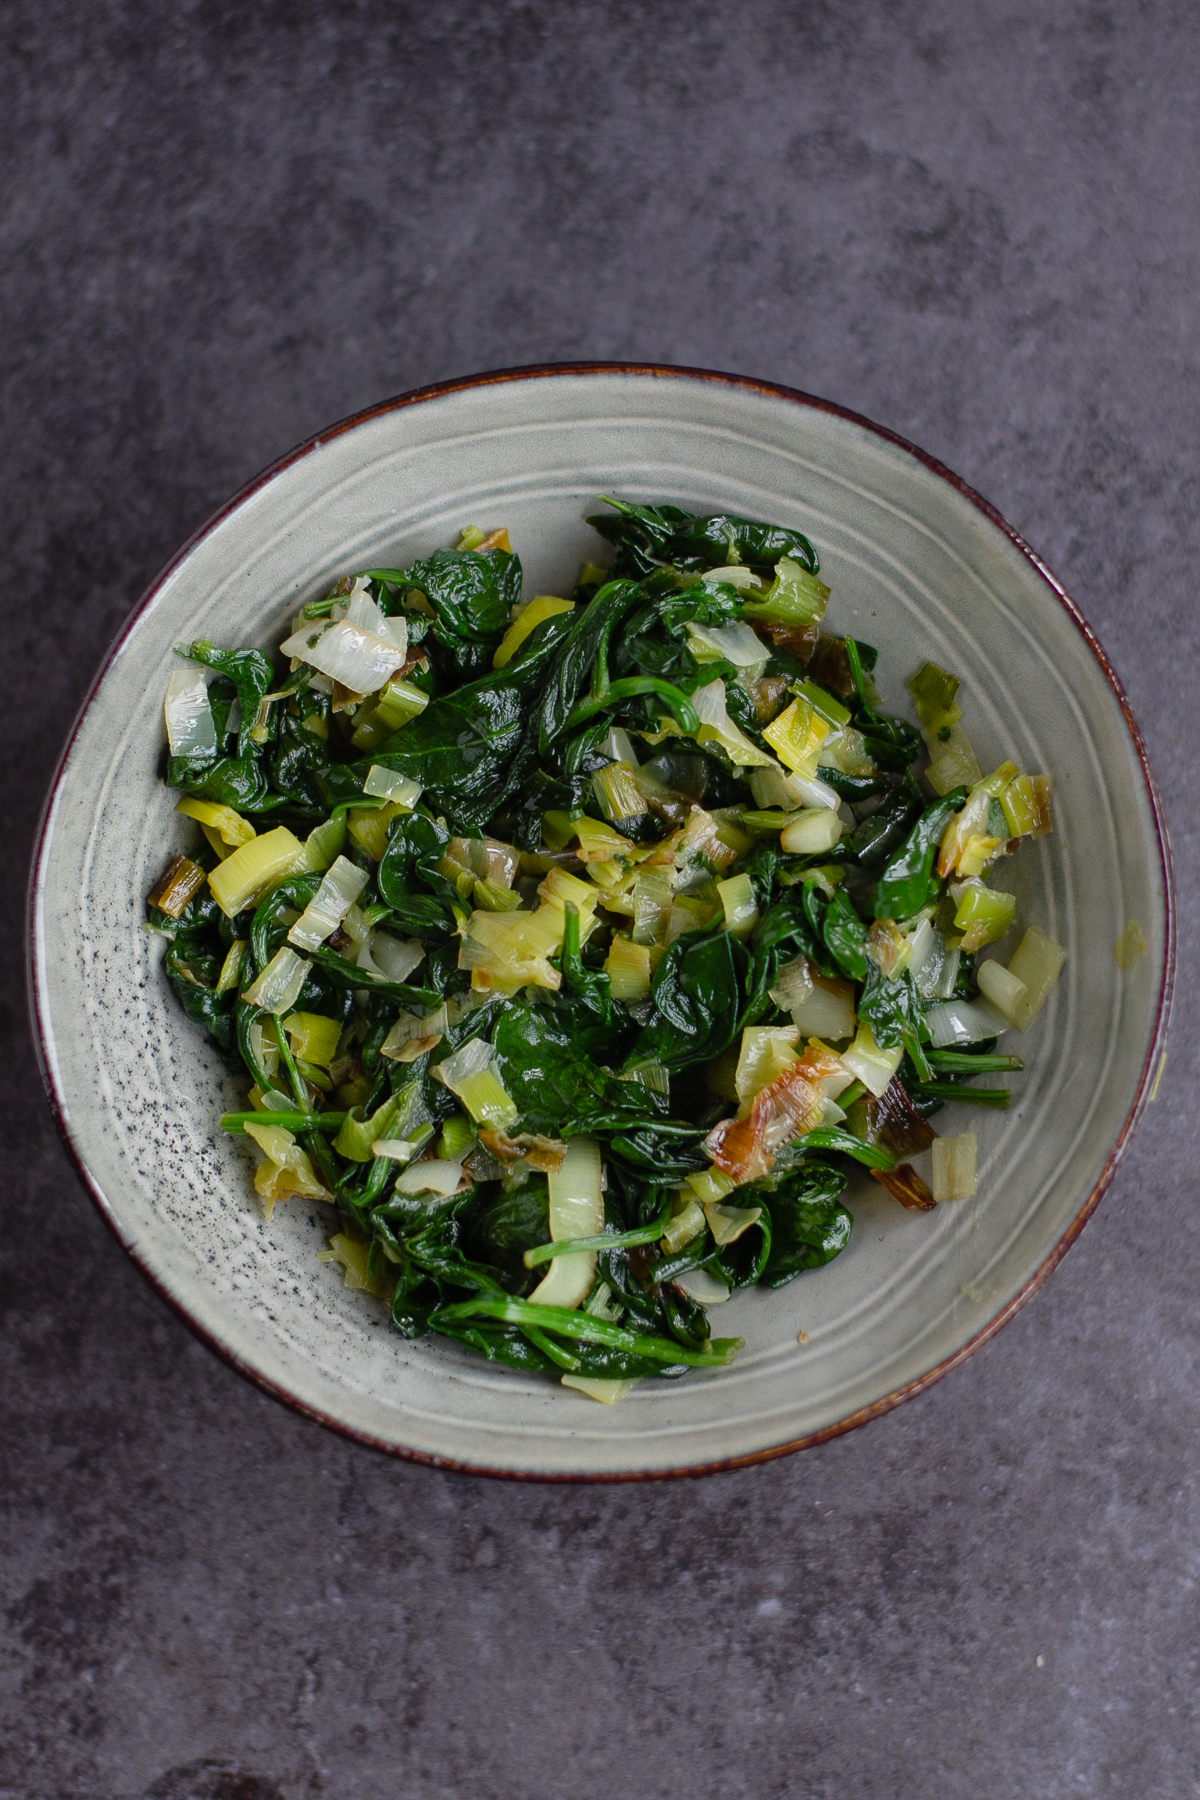 the leek and spinach mixture in a bowl for a vegan pide filling